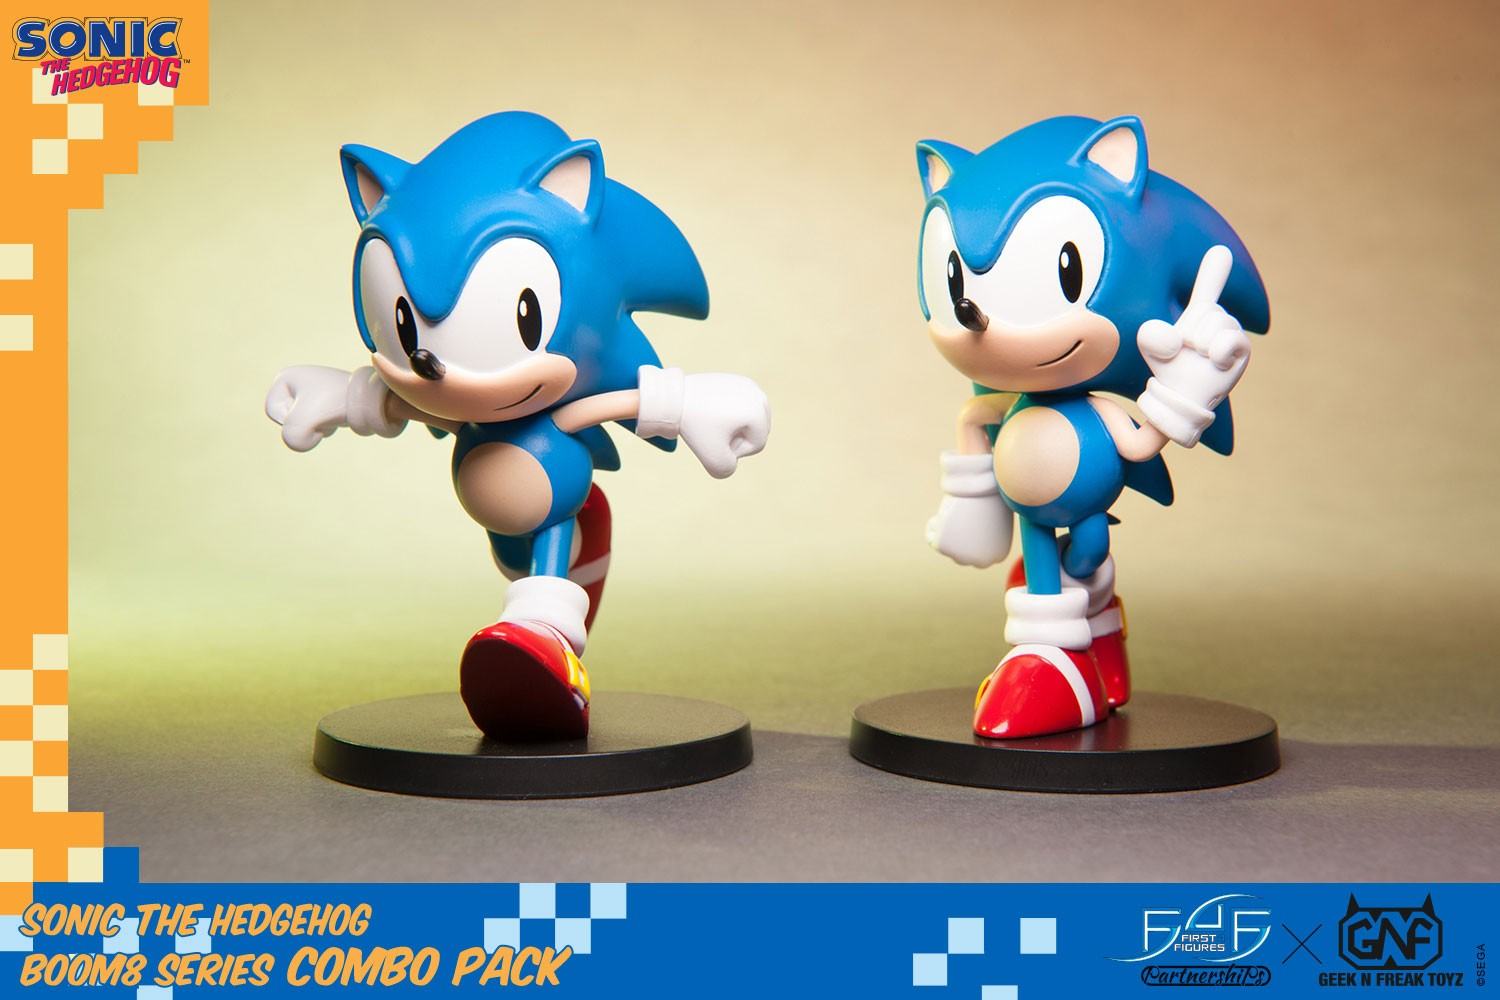 Sonic Boom8 Combo Pack